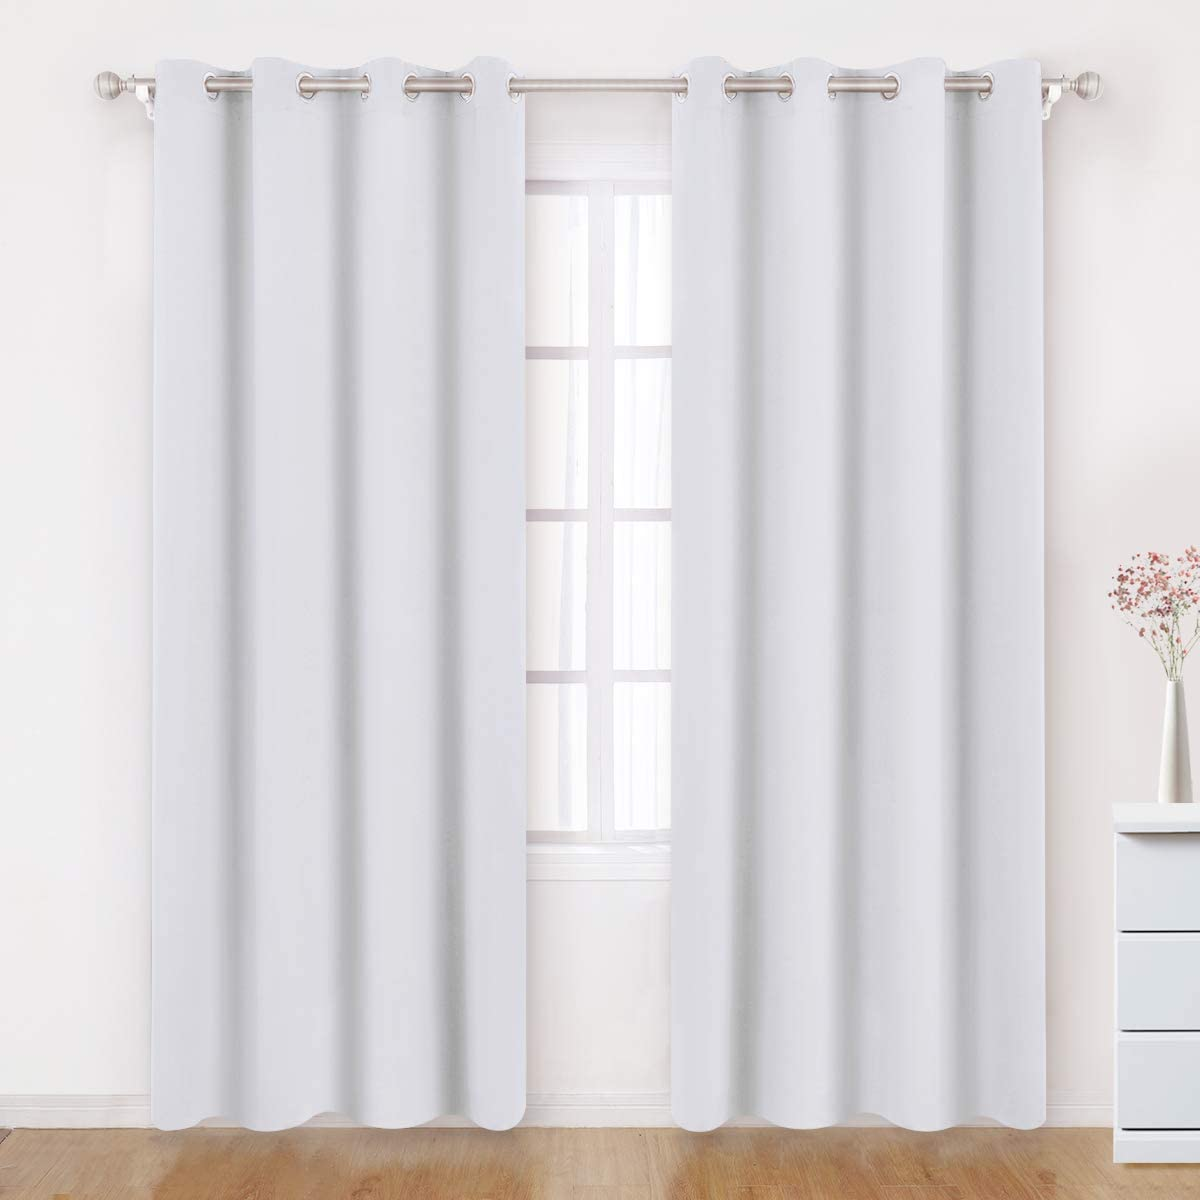 BYSURE Greyish White Blackout Curtains 52 x 84 Inch Length 2 Panels White Room Darkening Curtain Thermal Insulated Drapes White Grommet Blackout Curtains for Bedroom Curtains Sets